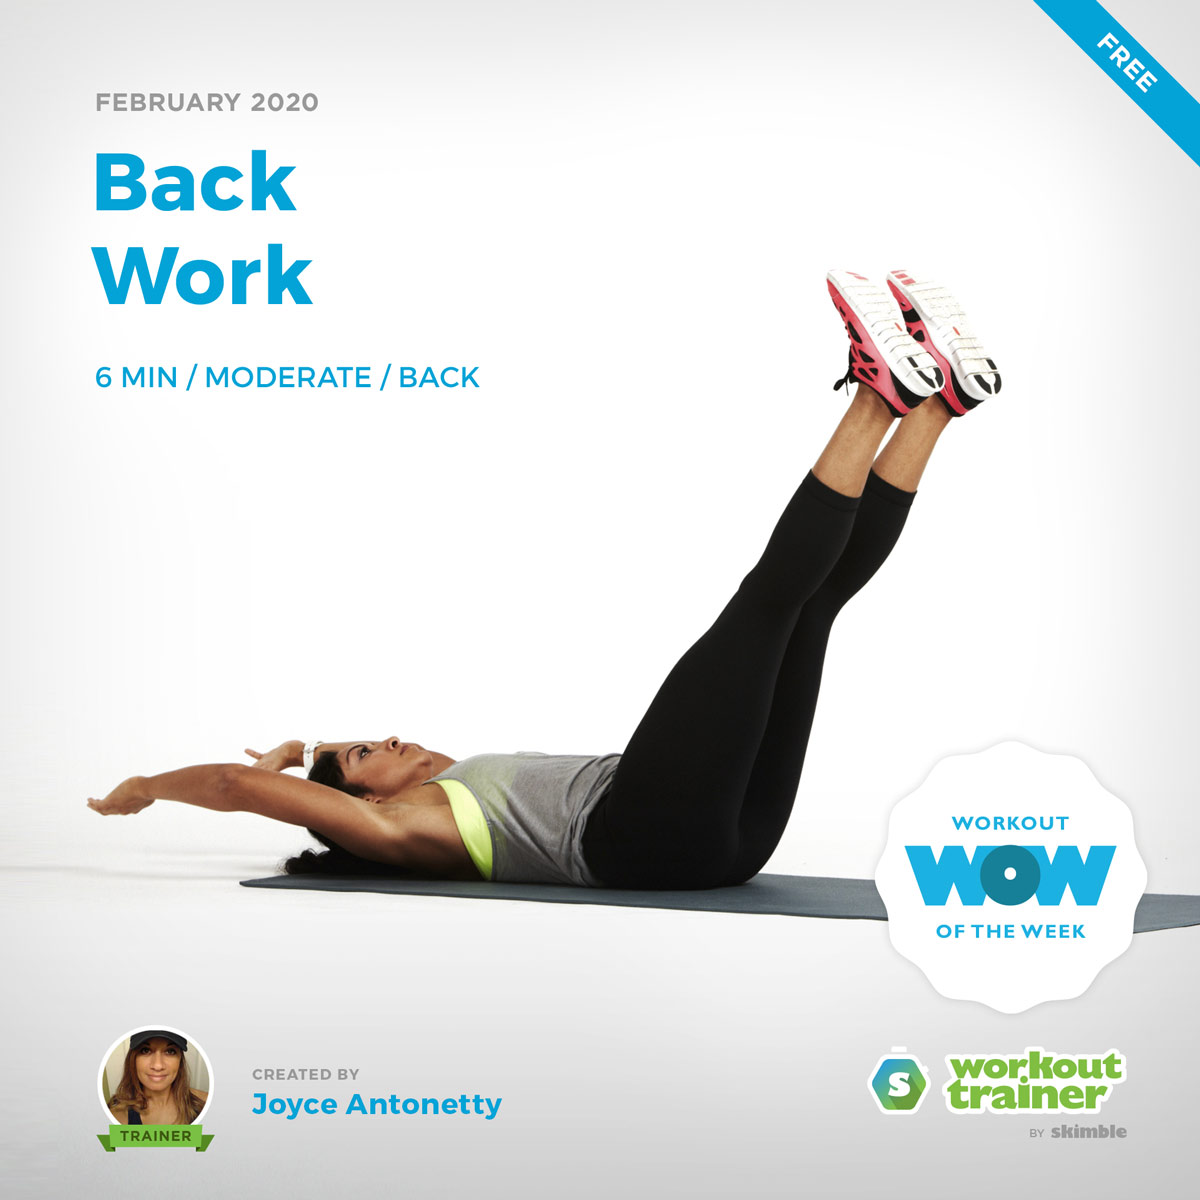 Workout Trainer by Skimble: Free Workout of the Week: Back Work by Joyce Antonetty